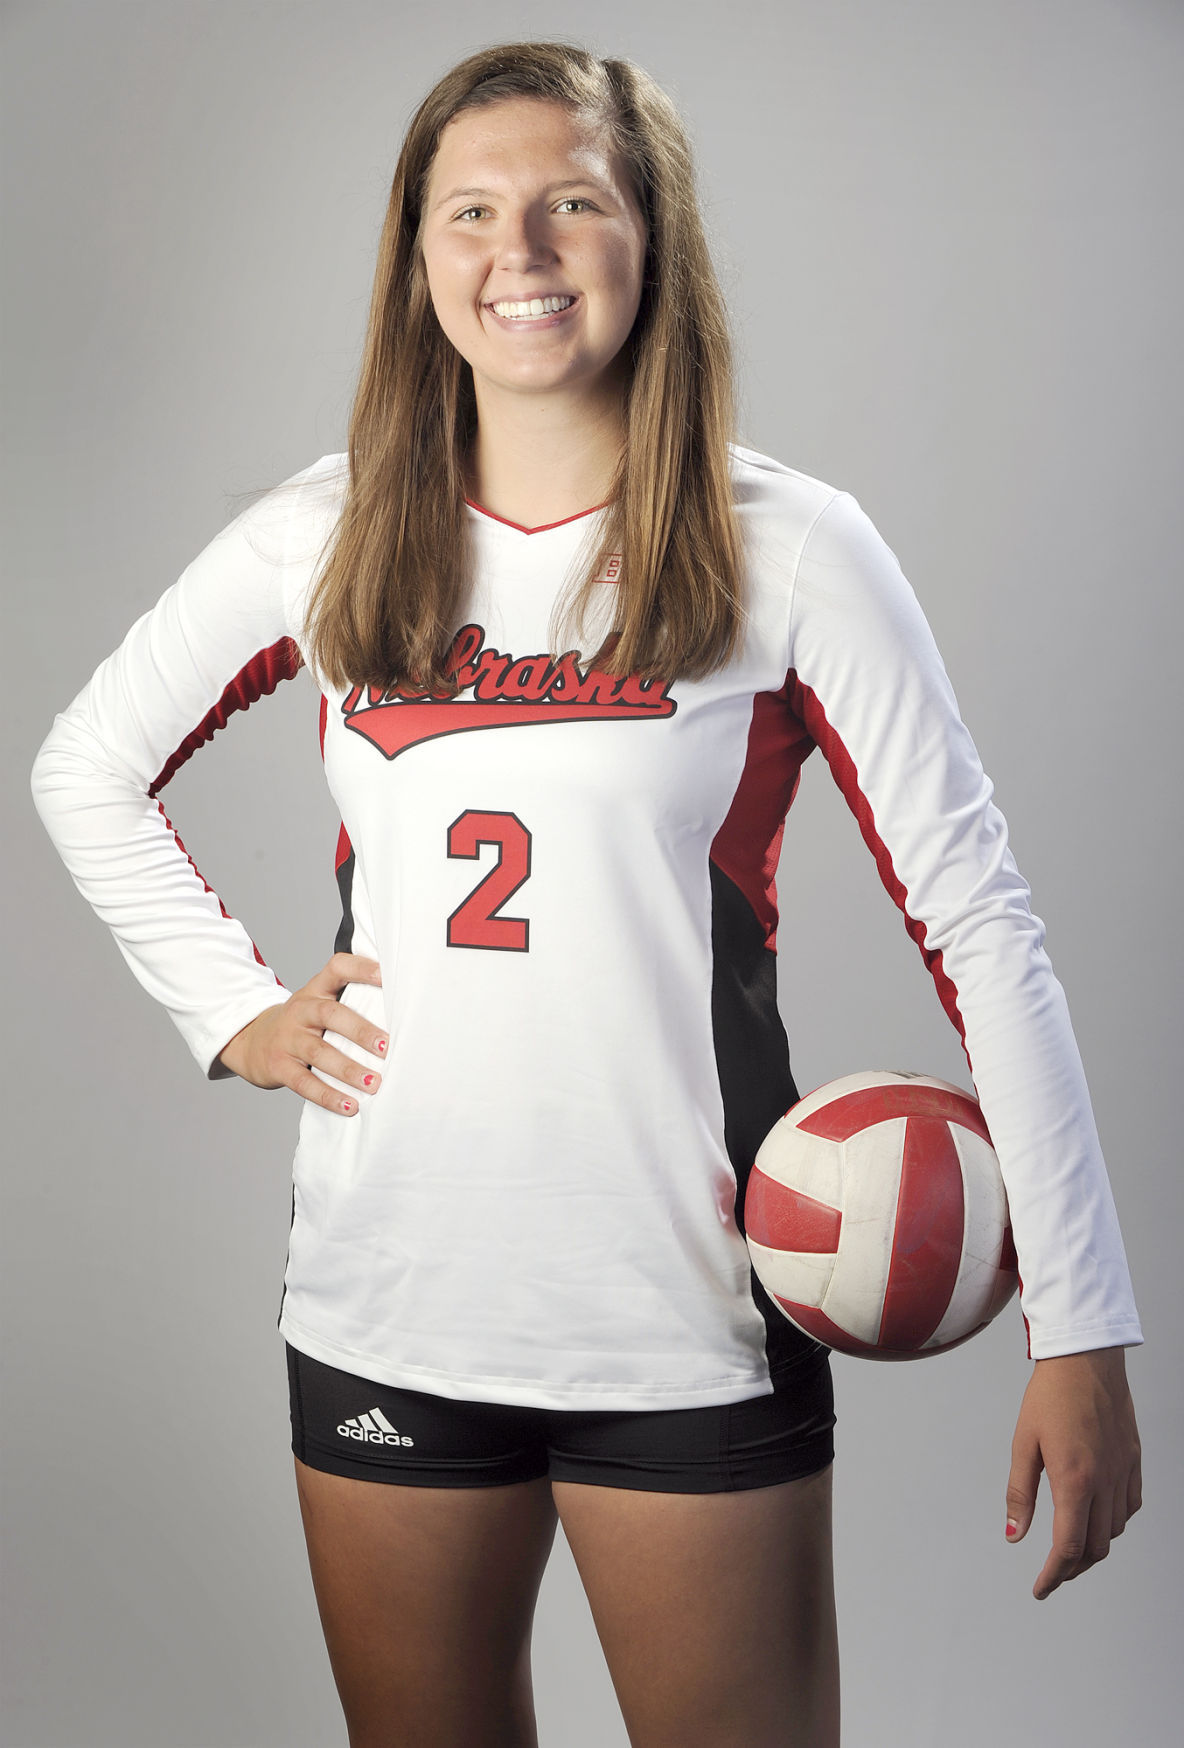 Volleyball Hard Hitting Freshman Foecke Making Early Impact Volleyball Journalstar Com